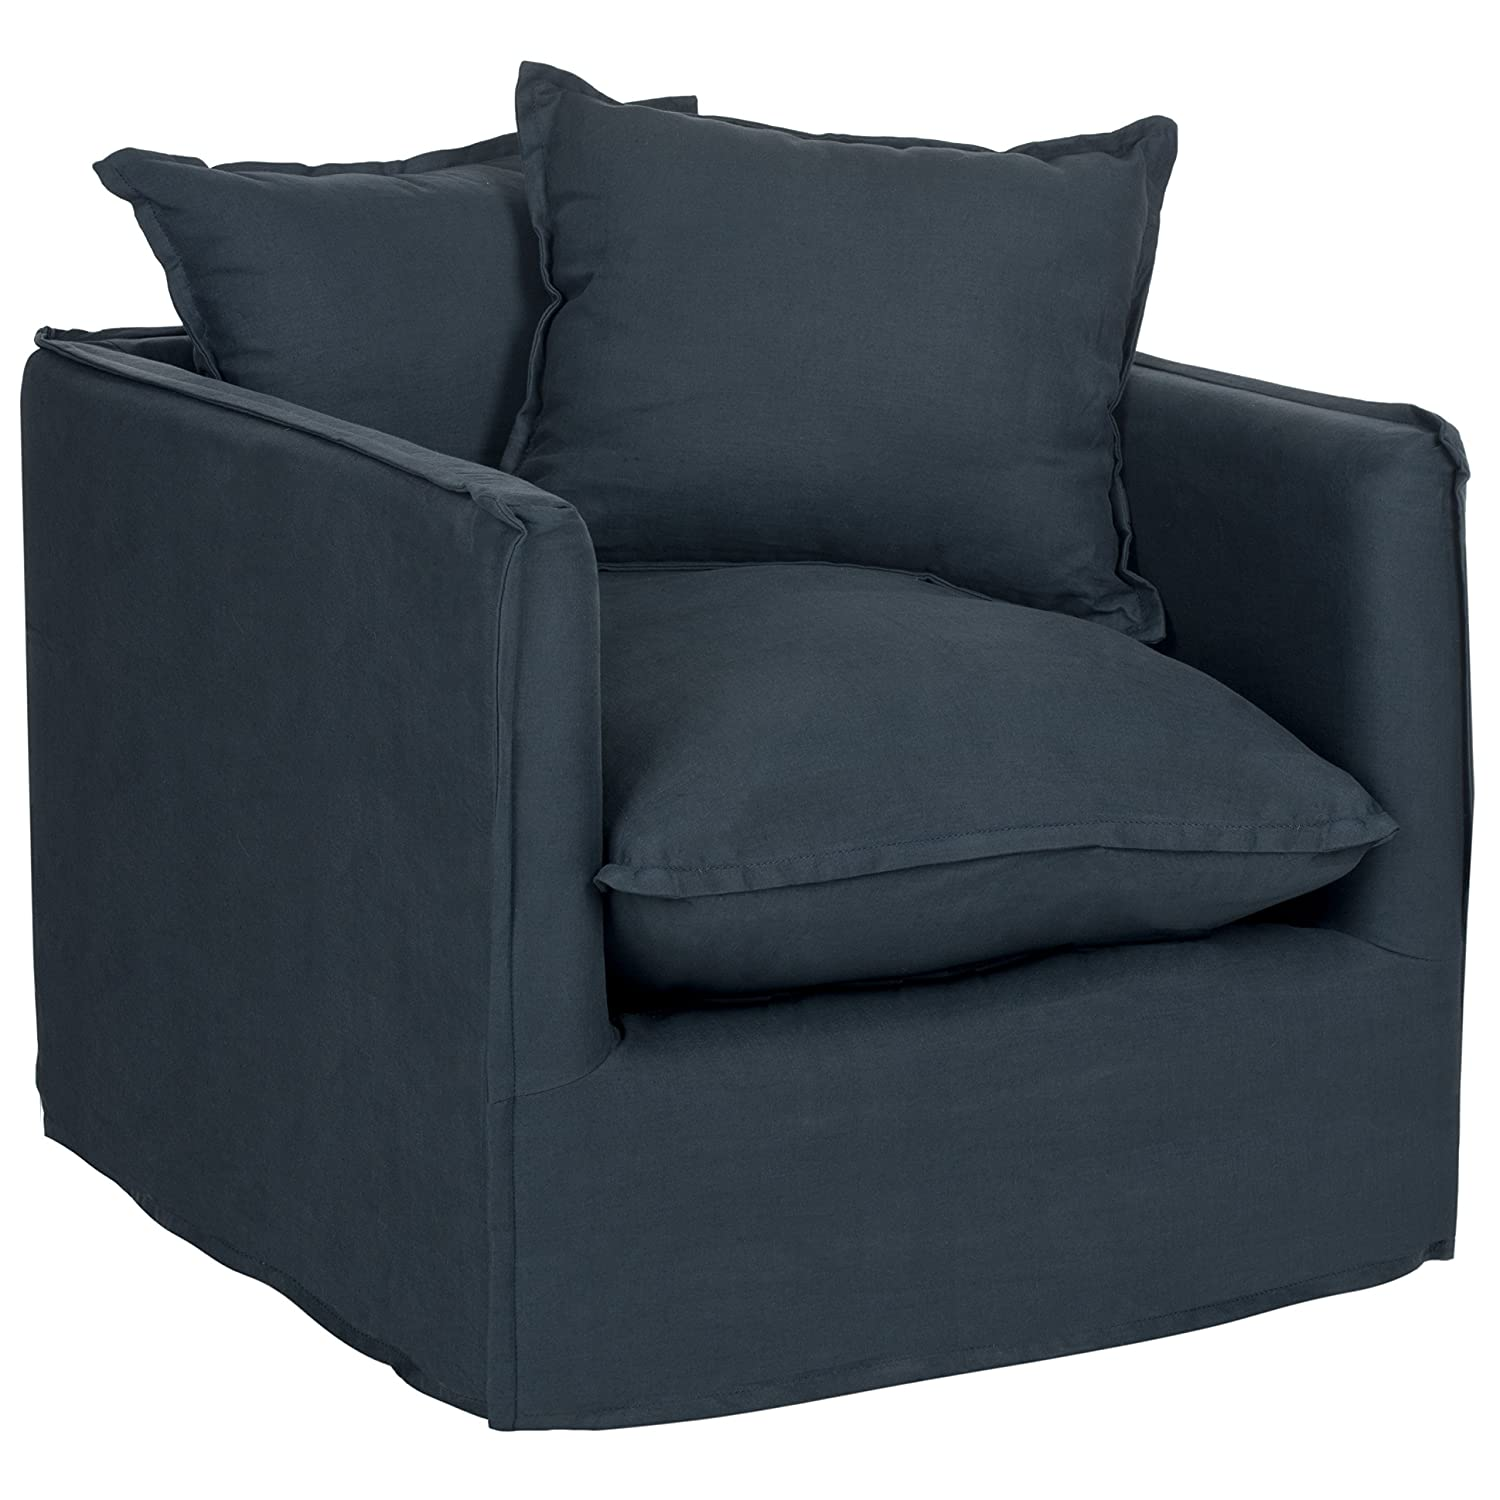 Elegant Amazon.com: Safavieh Mercer Collection Joey Arm Chair, Blue: Kitchen U0026  Dining